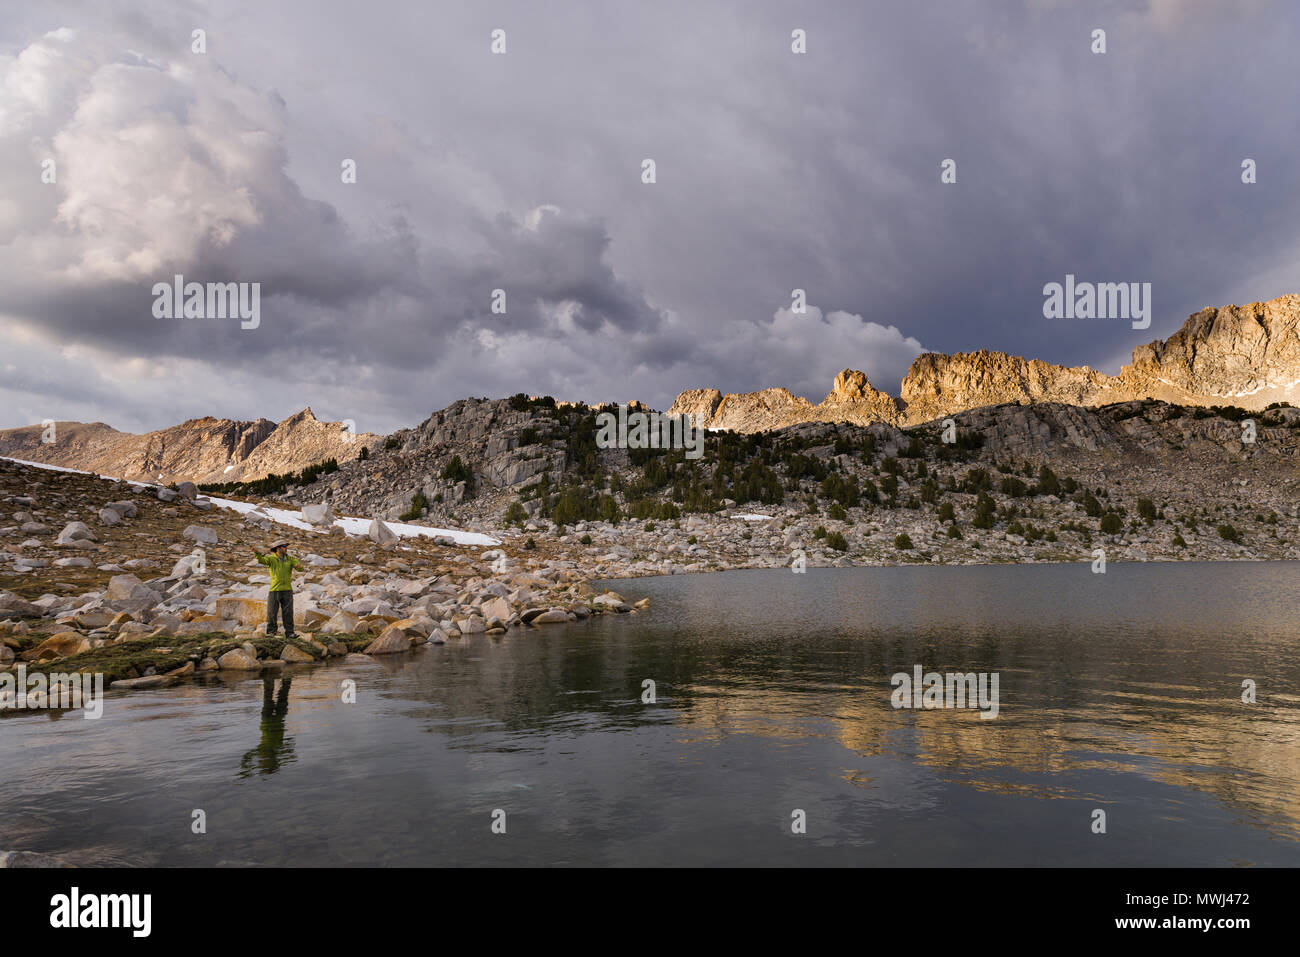 Sunset fly fishing at Steelhead Lake with storm clouds in the High Sierra mountains near Pine Creek Pass and French Canyon. - Stock Image